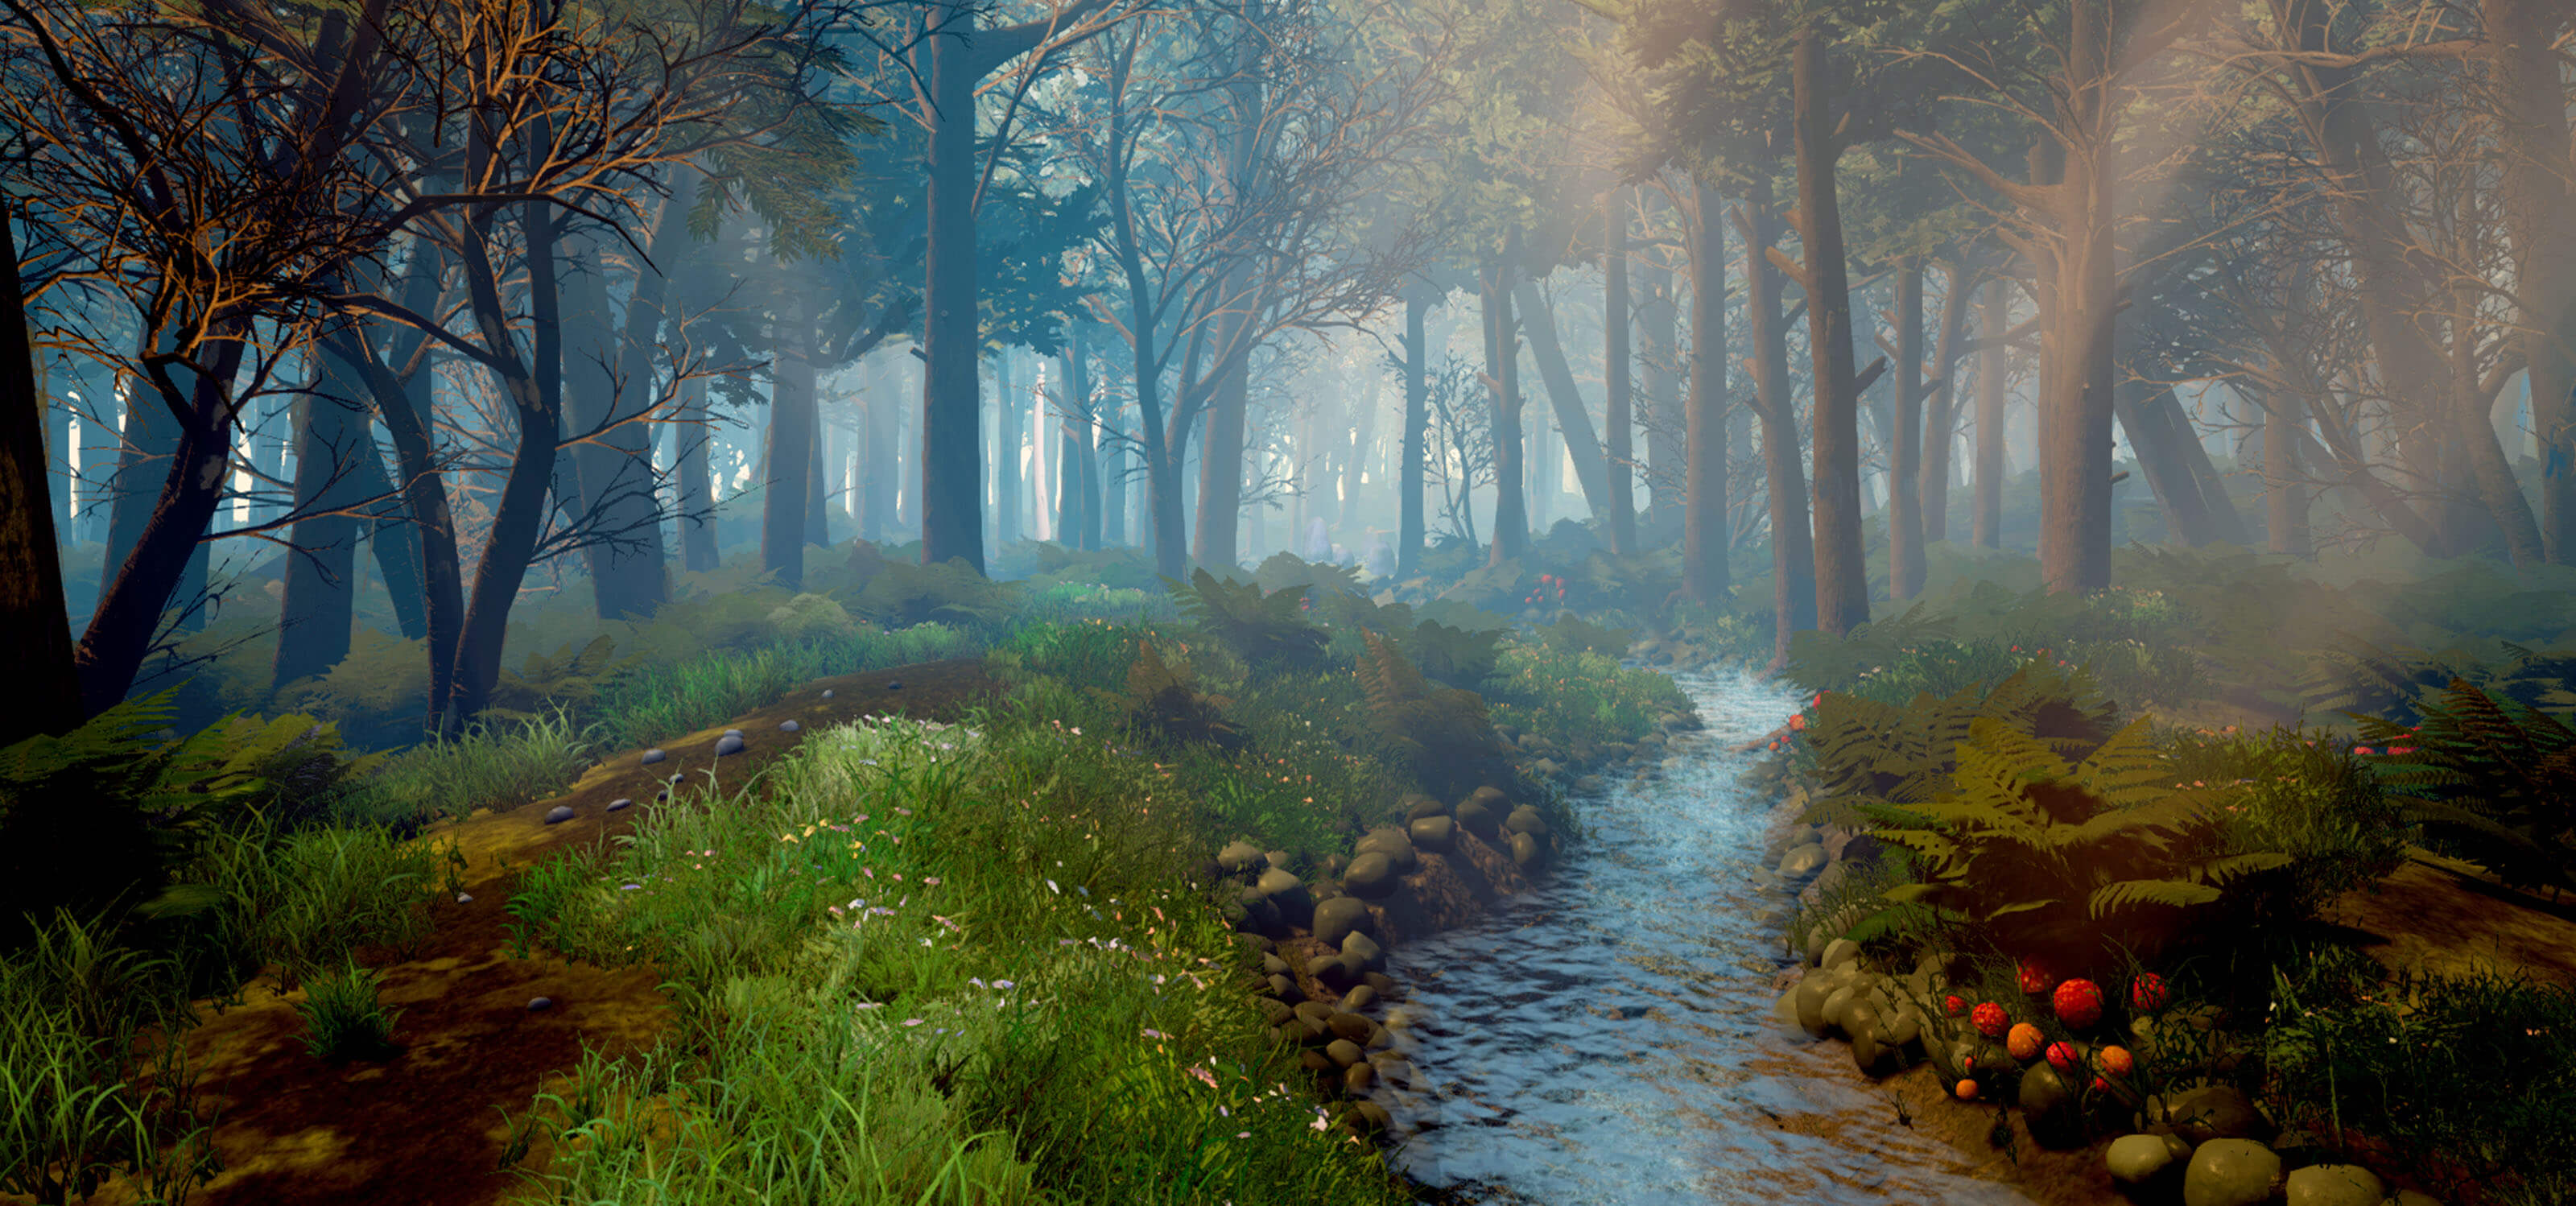 3D model of a stream deep in the forest with beams of sunlight